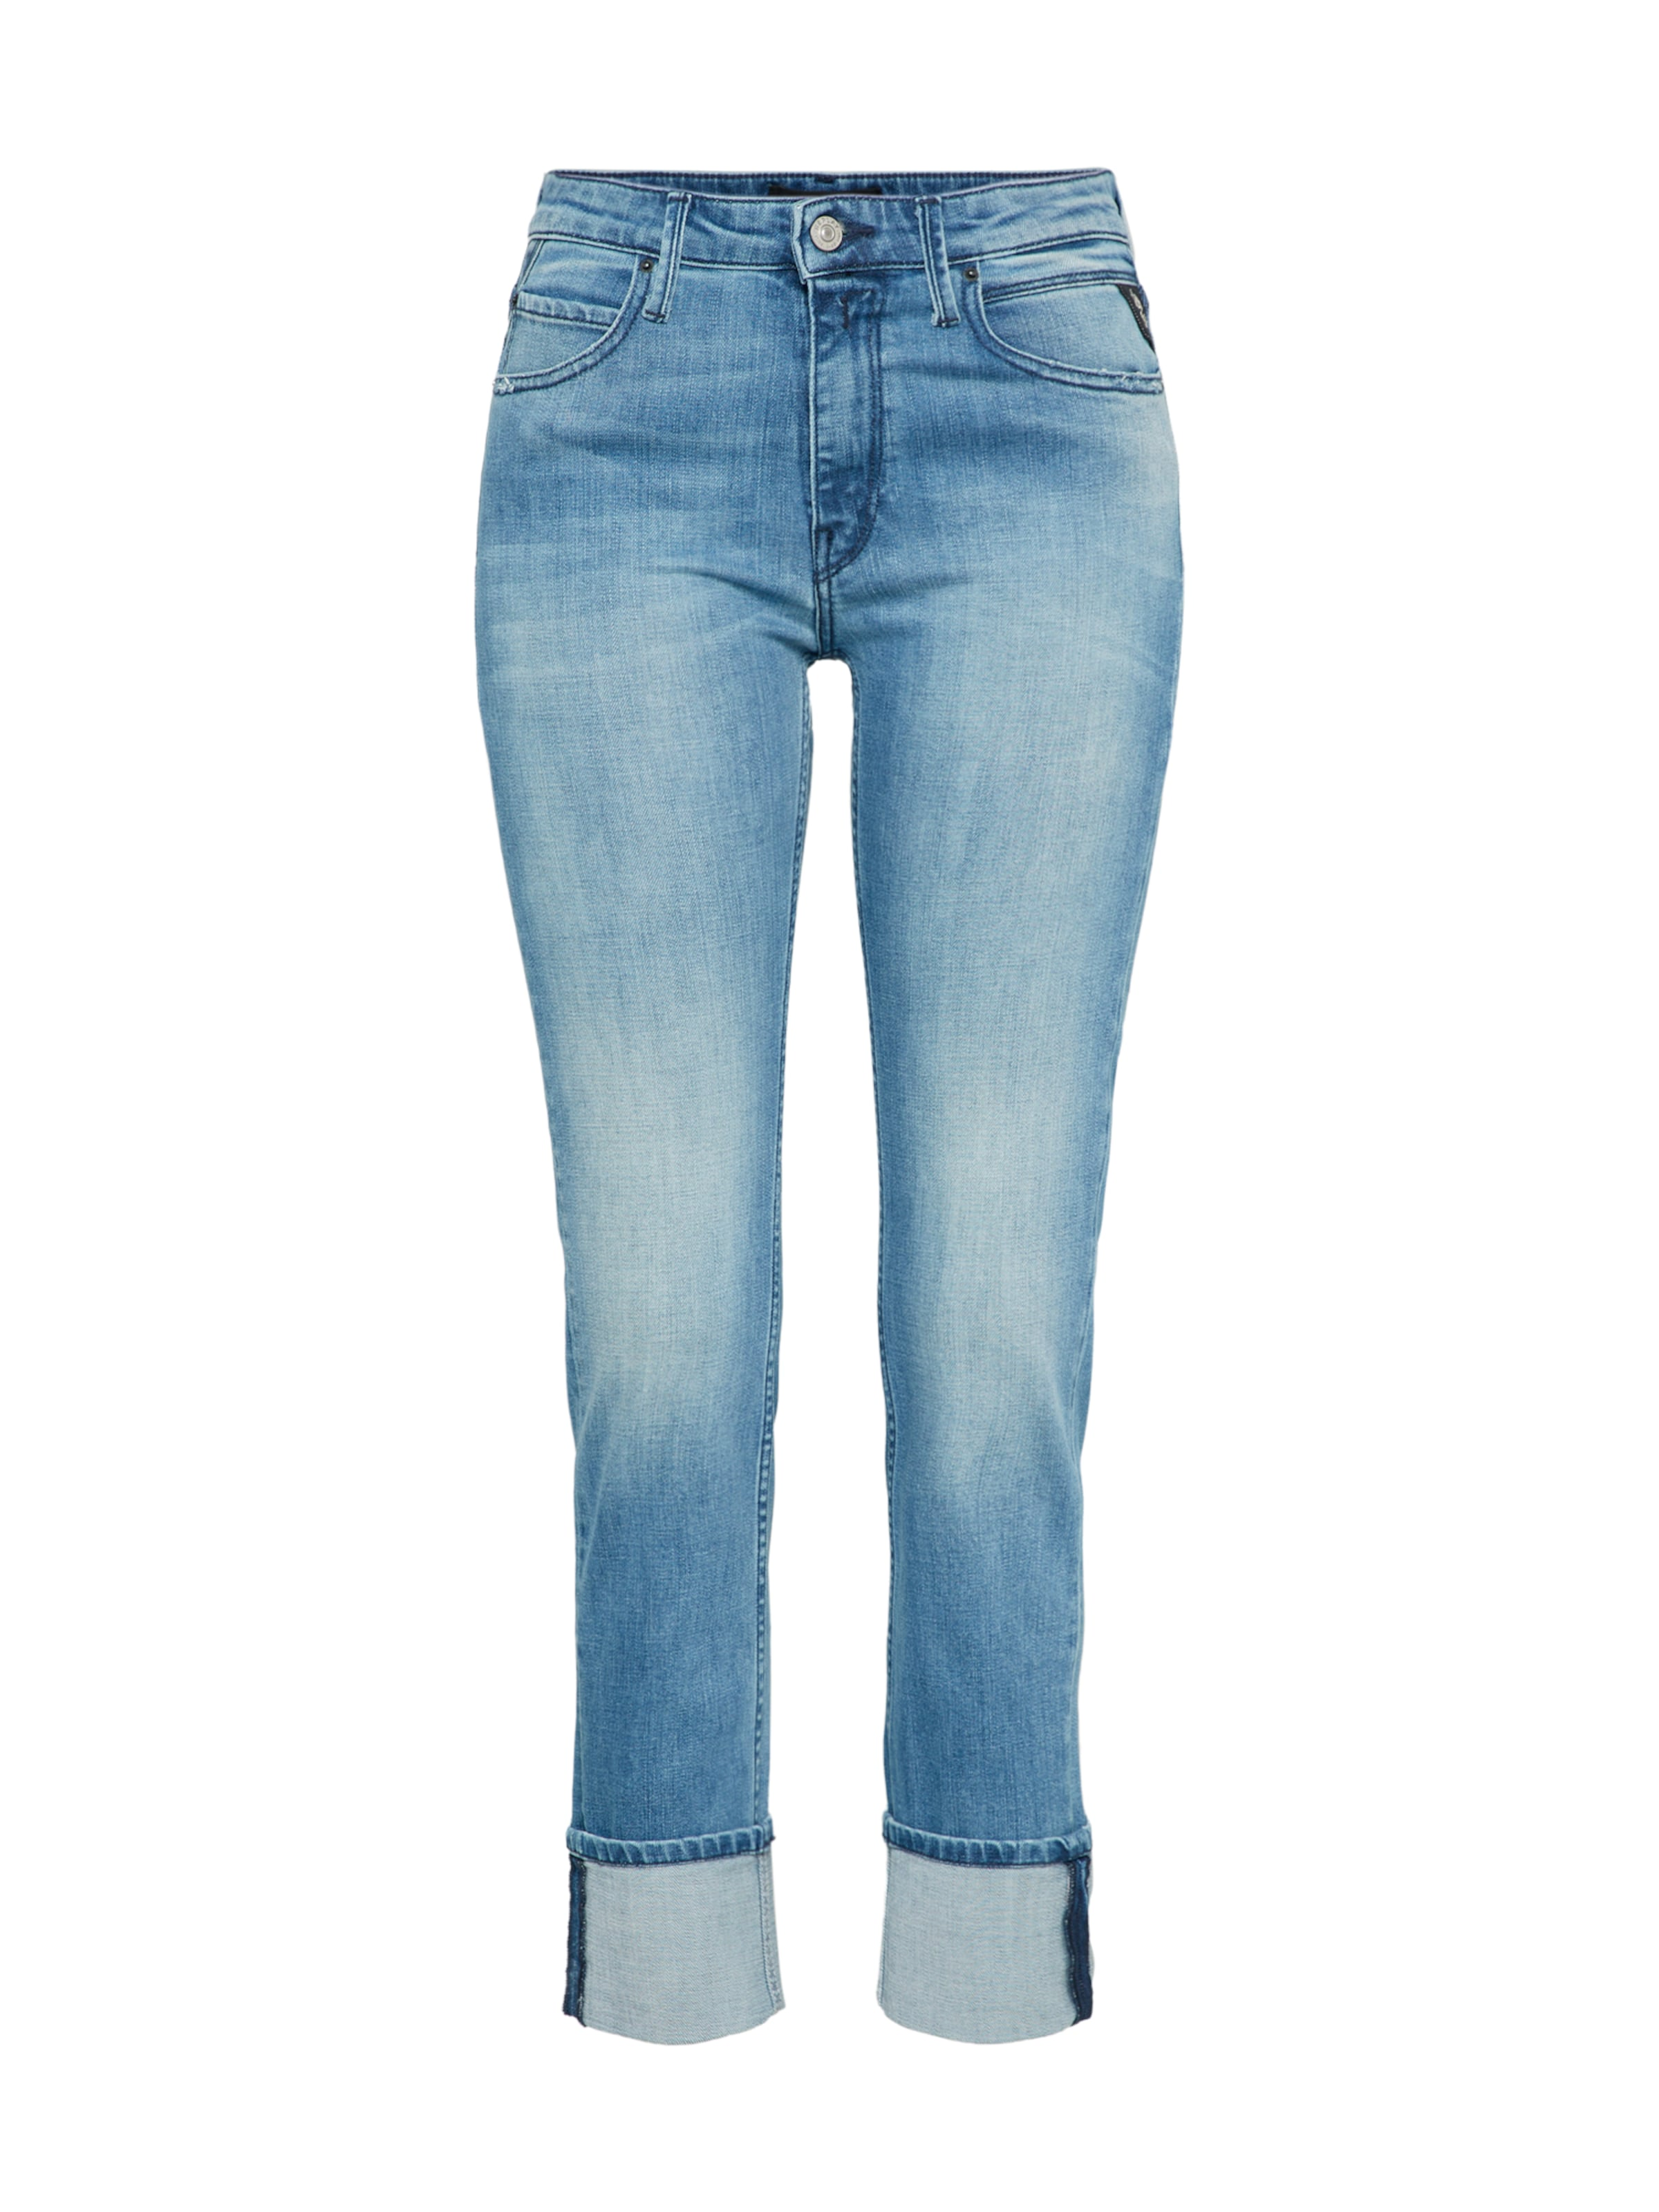 REPLAY Regular Jeans Jengre in blue denim  ABOUT YOU